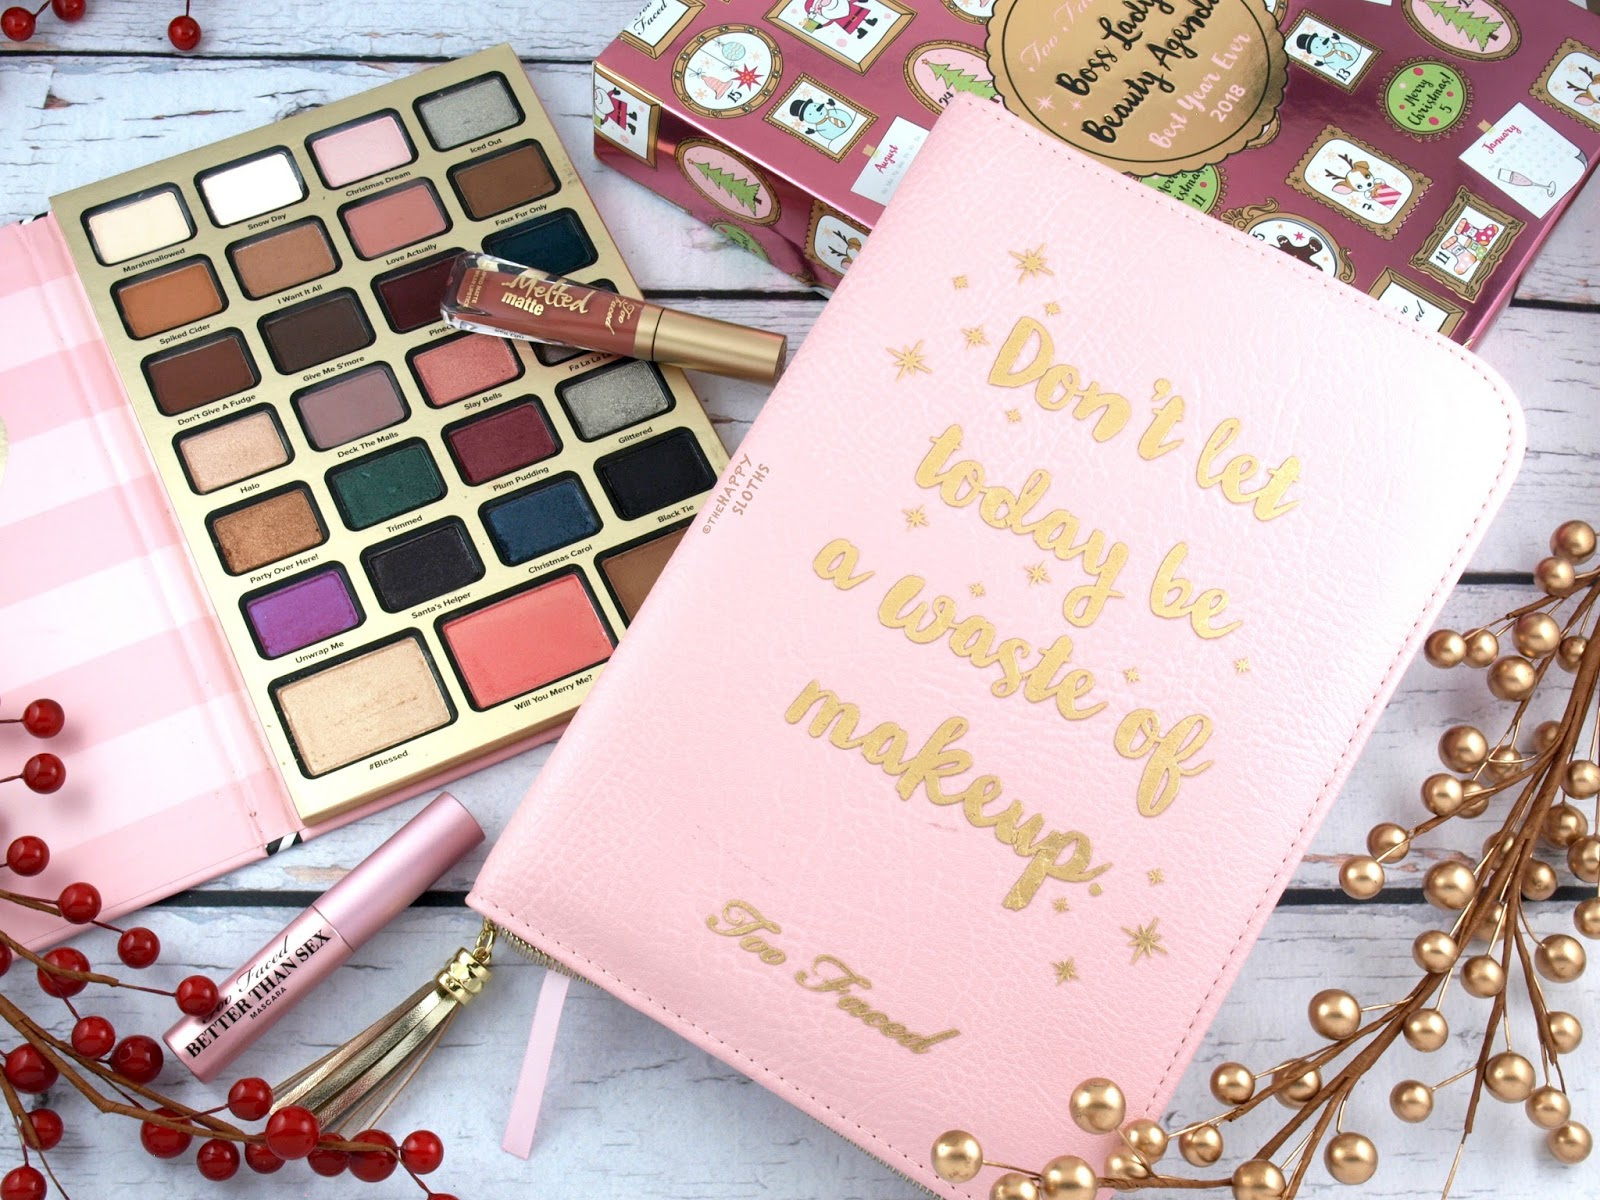 Too Faced Holiday 2017   Boss Lady Beauty Agenda: Review and Swatches